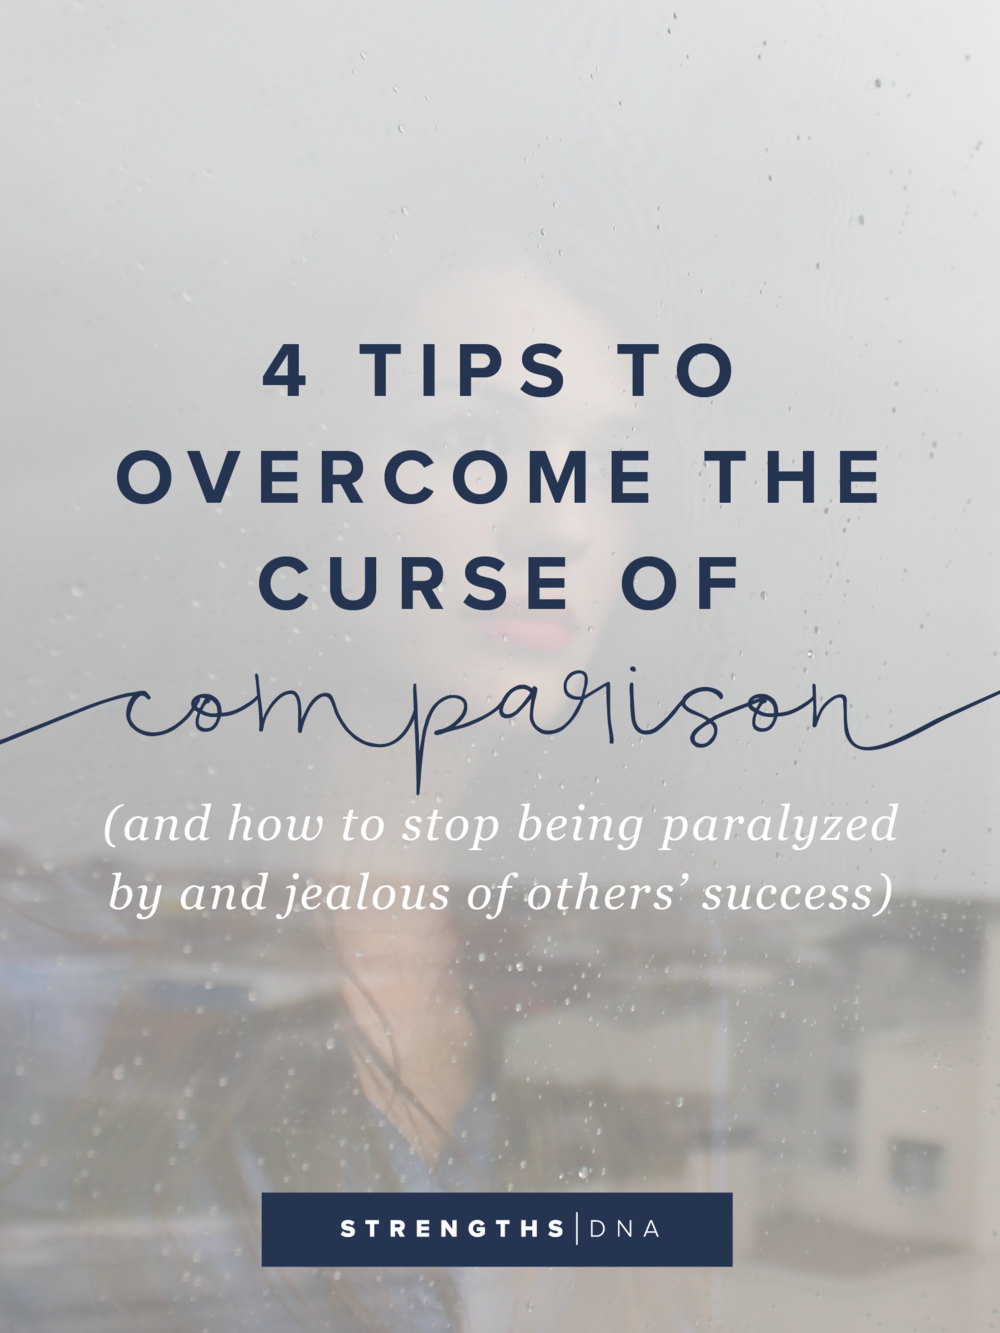 4 Tips to Overcome the Curse of Comparison - http://www.strengthsdna.com/curse-of-comparison